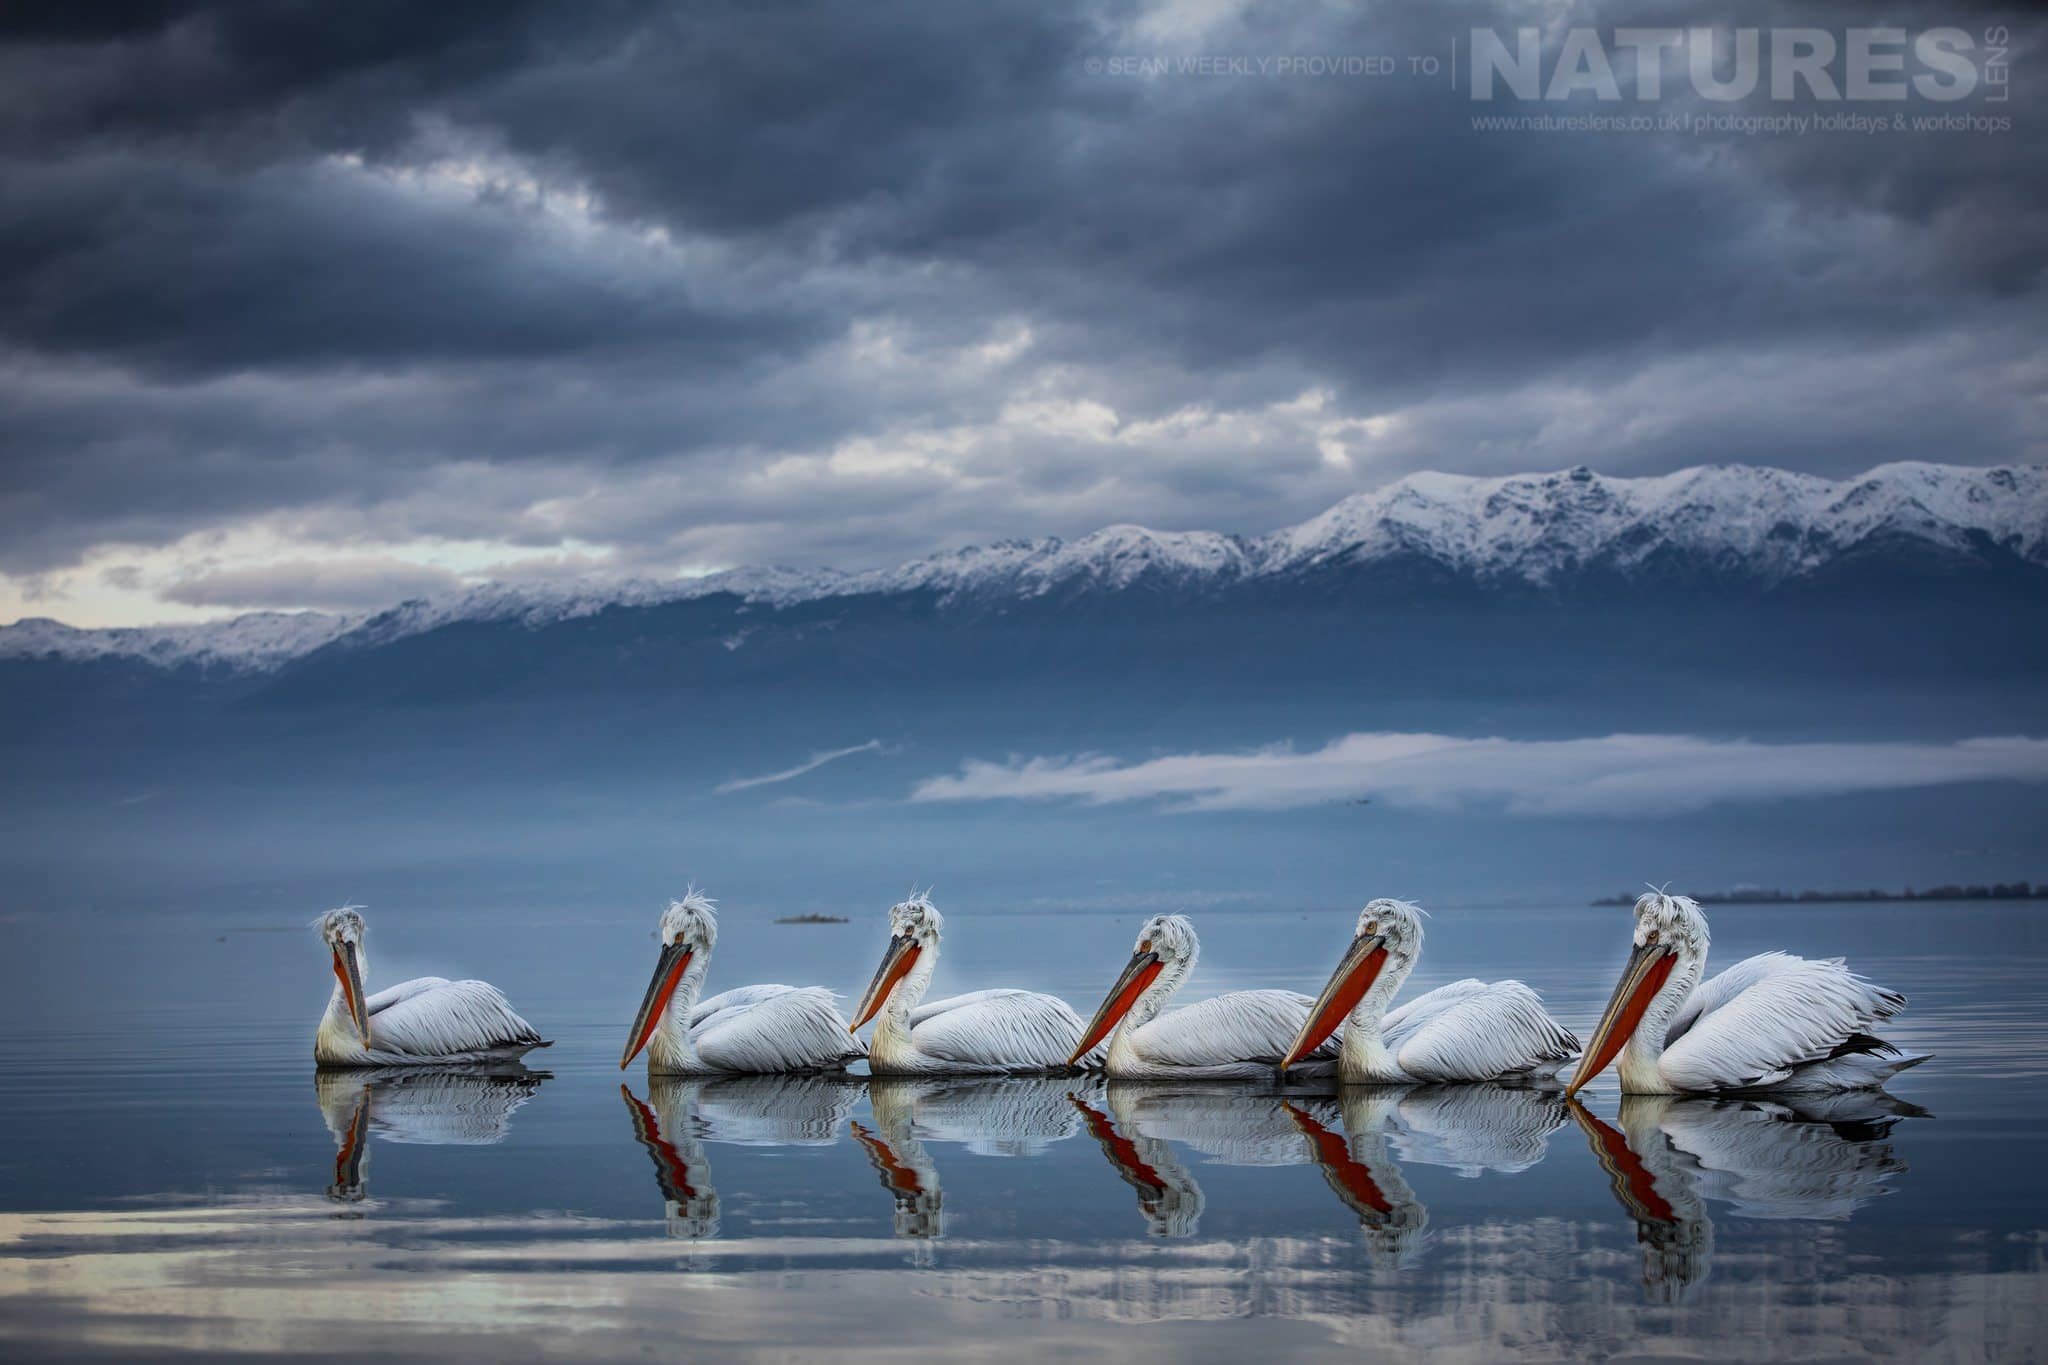 A squadron of six Dalmatian Pelicans drift gently on the waters of the lake during the blue hour photographed during one of the NaturesLens Kerkini Pelican Photography Holidays